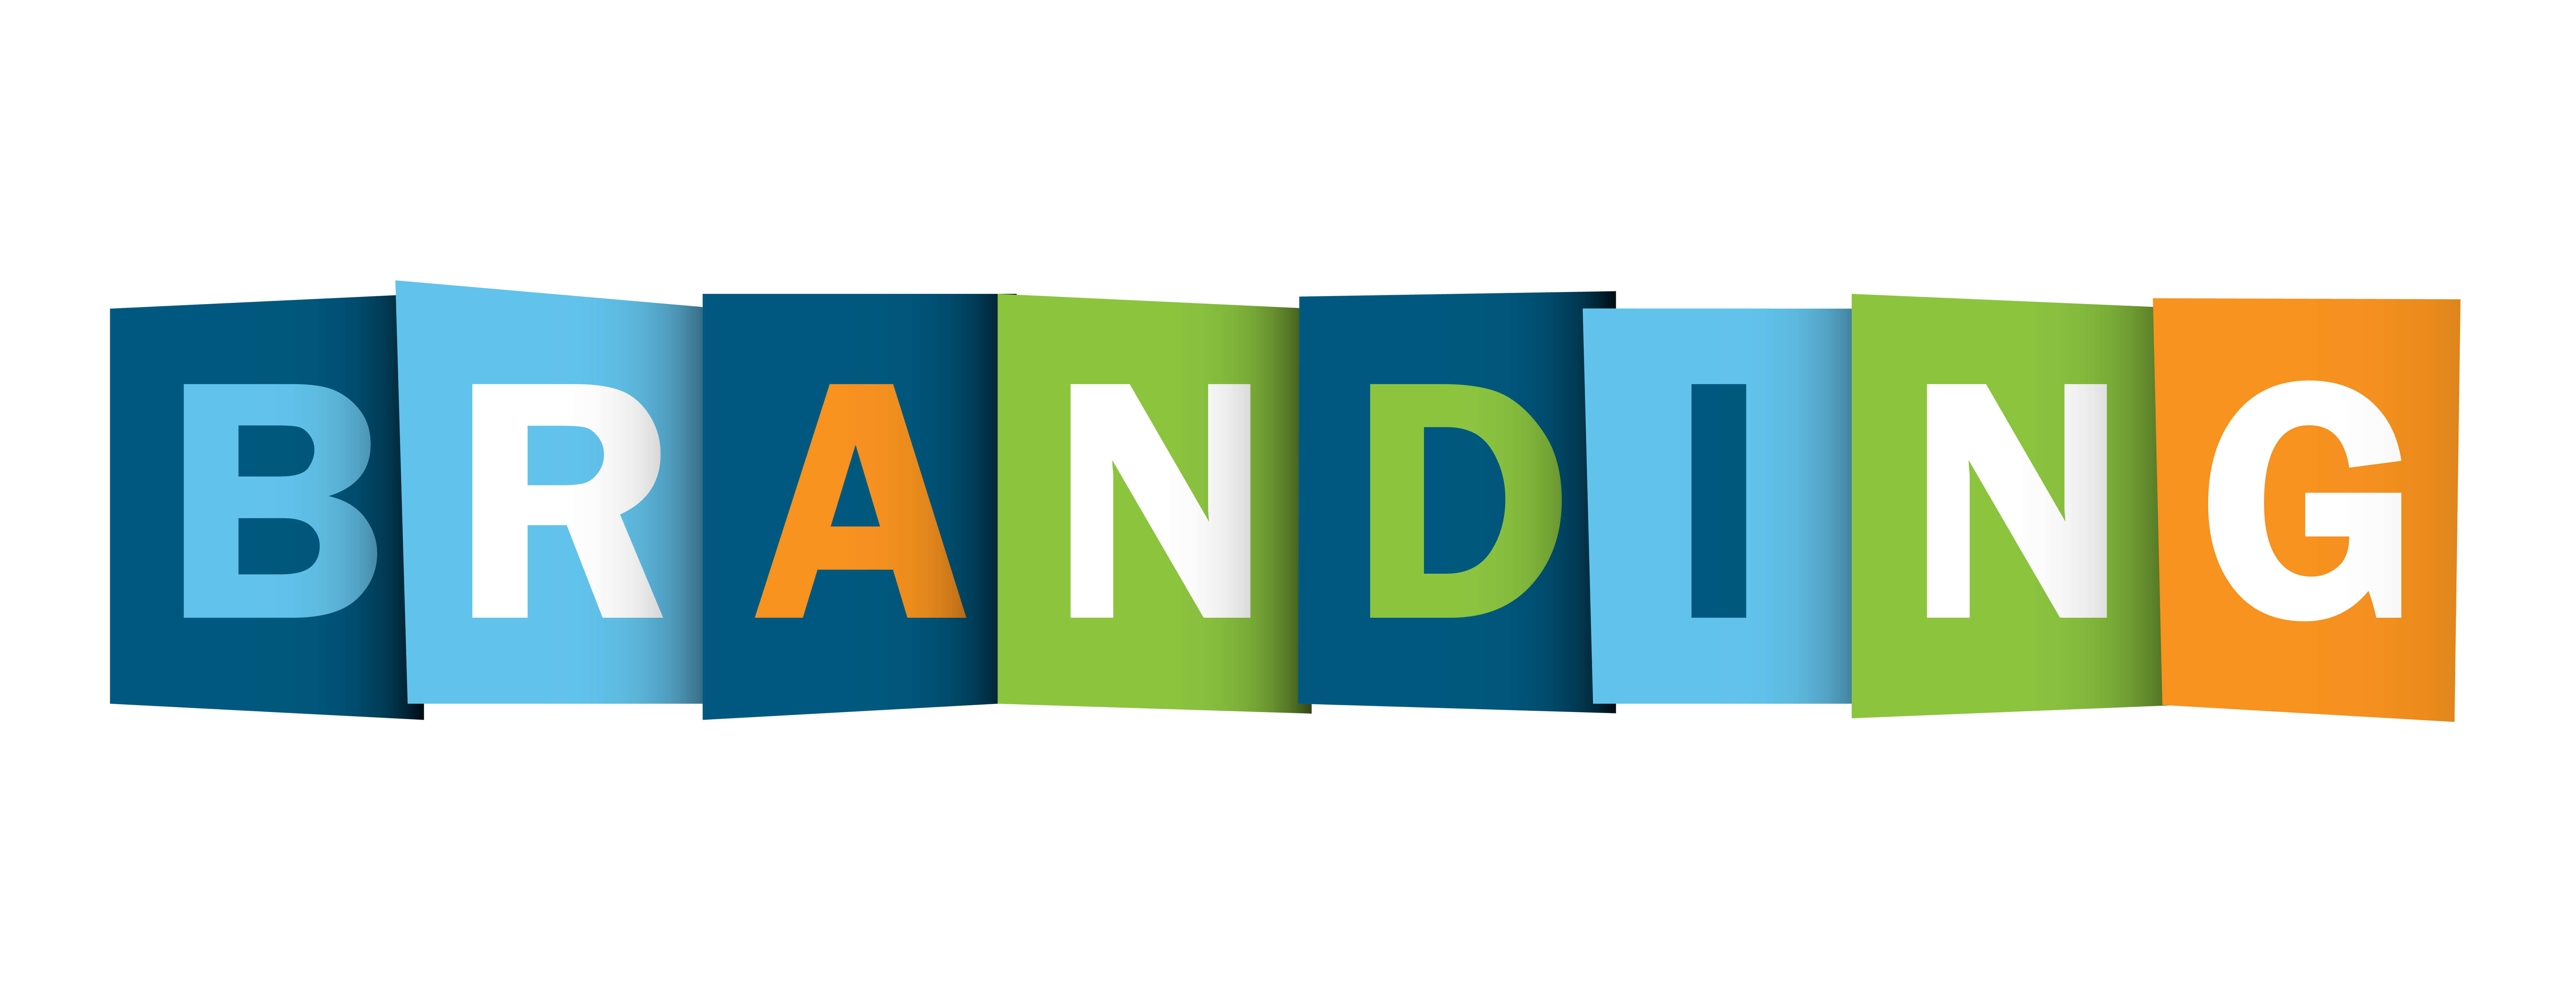 Branding Your Business the Right Way